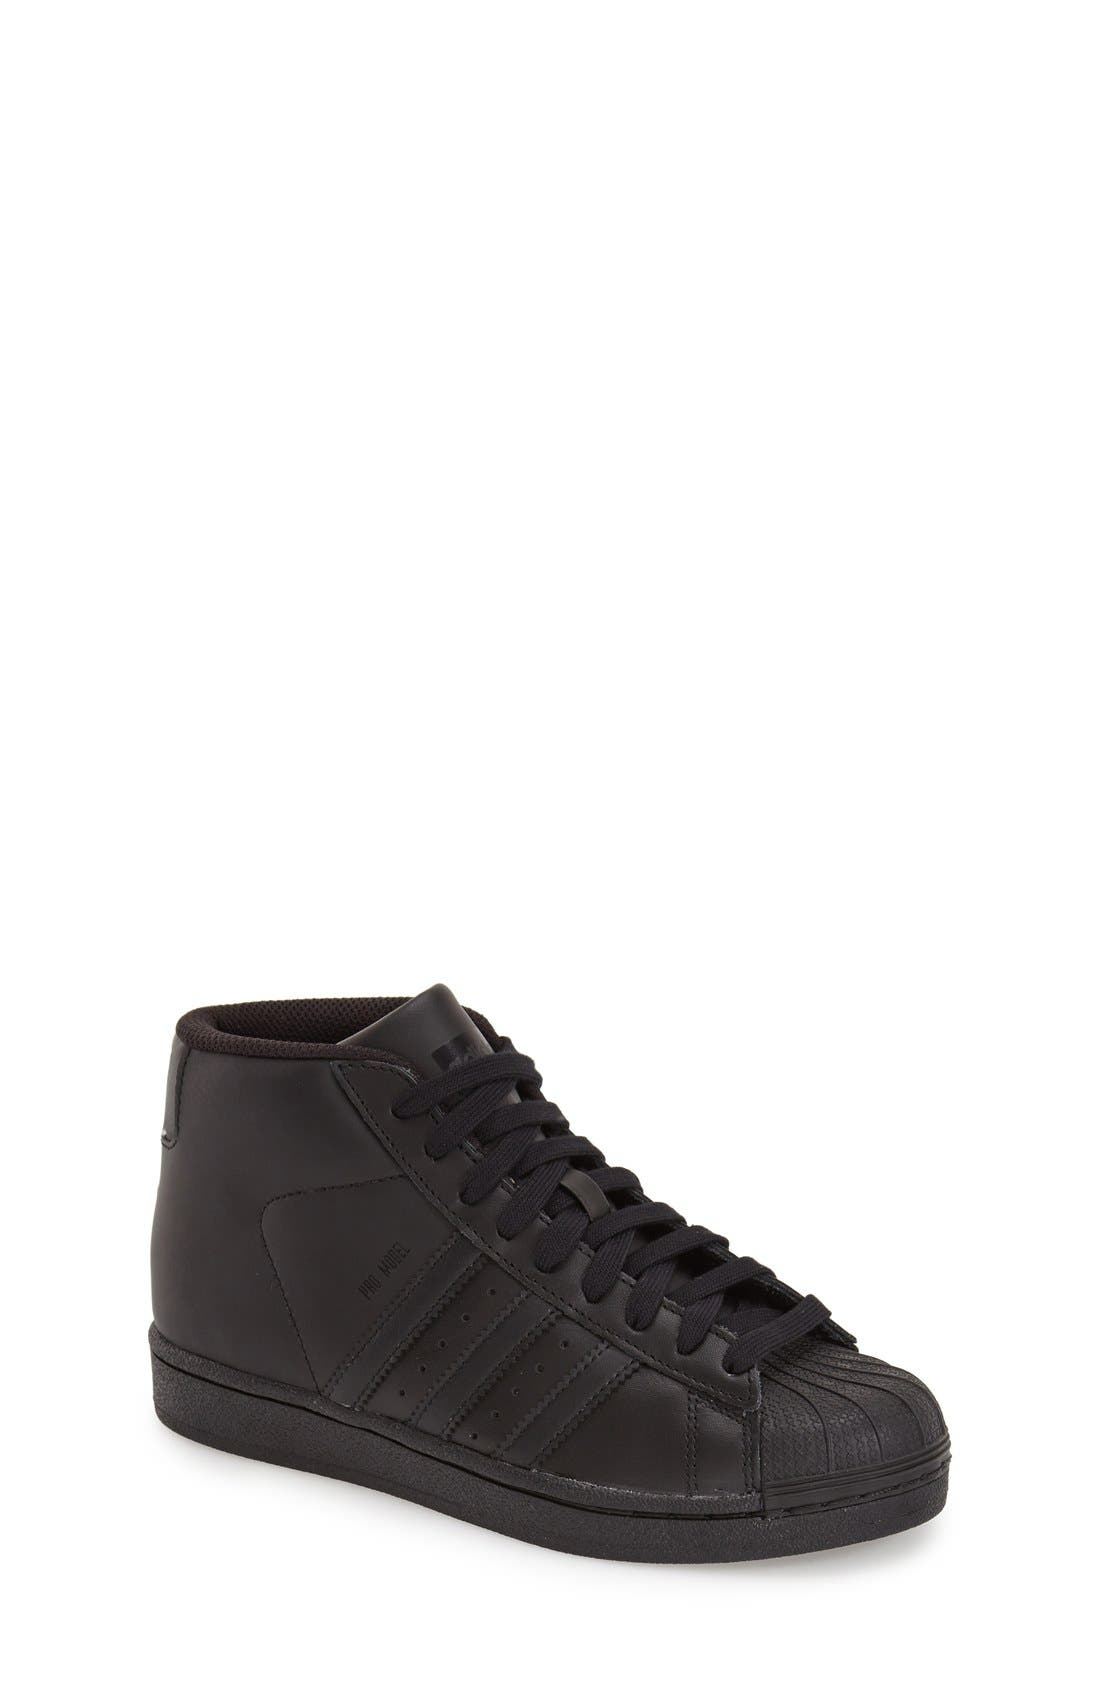 'Pro Model' High Top Sneaker,                         Main,                         color,